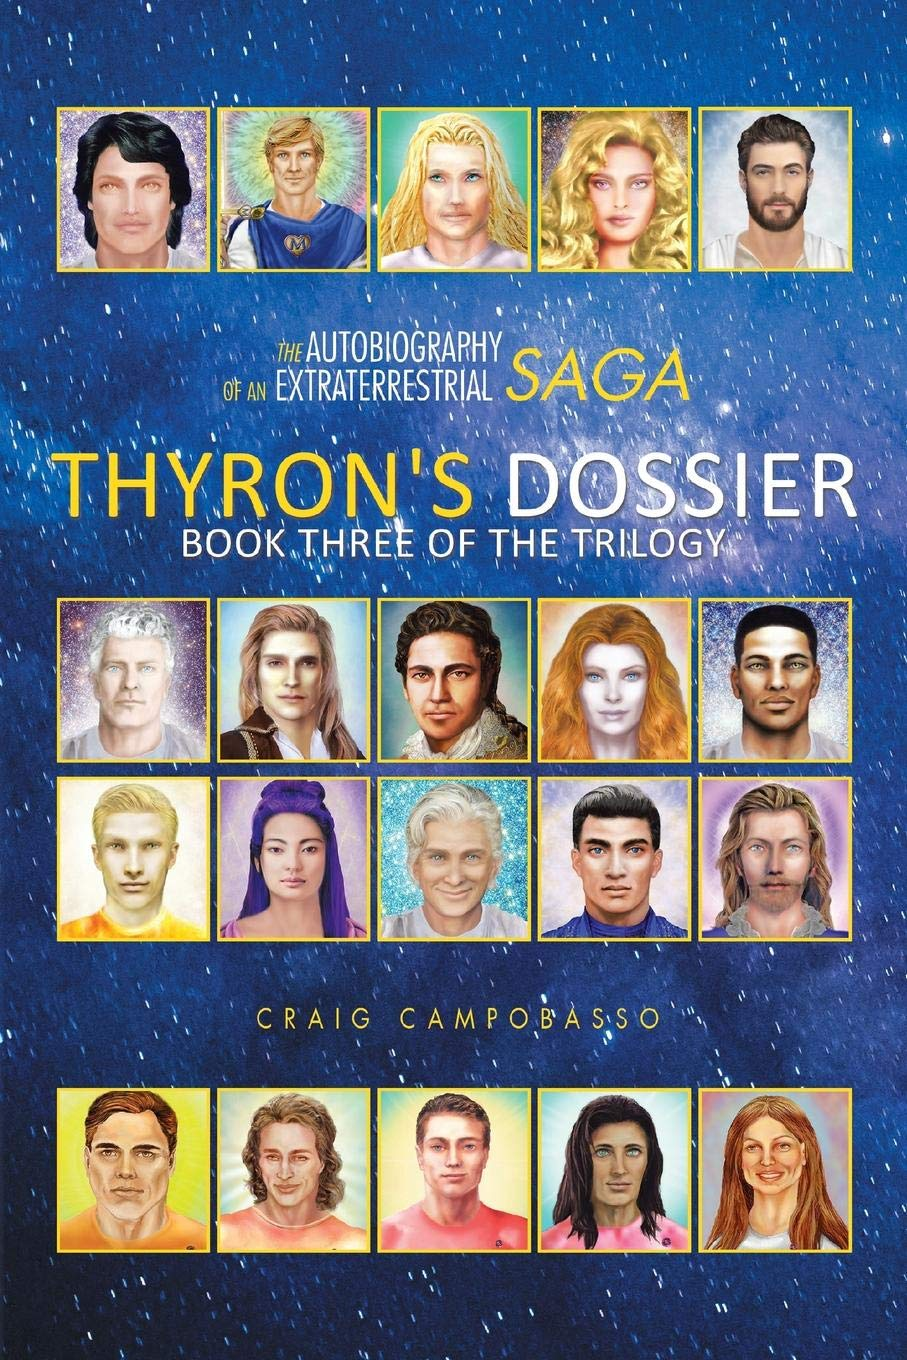 Download The Autobiography of an Extraterrestrial Saga: Thyron's Dossier PDF